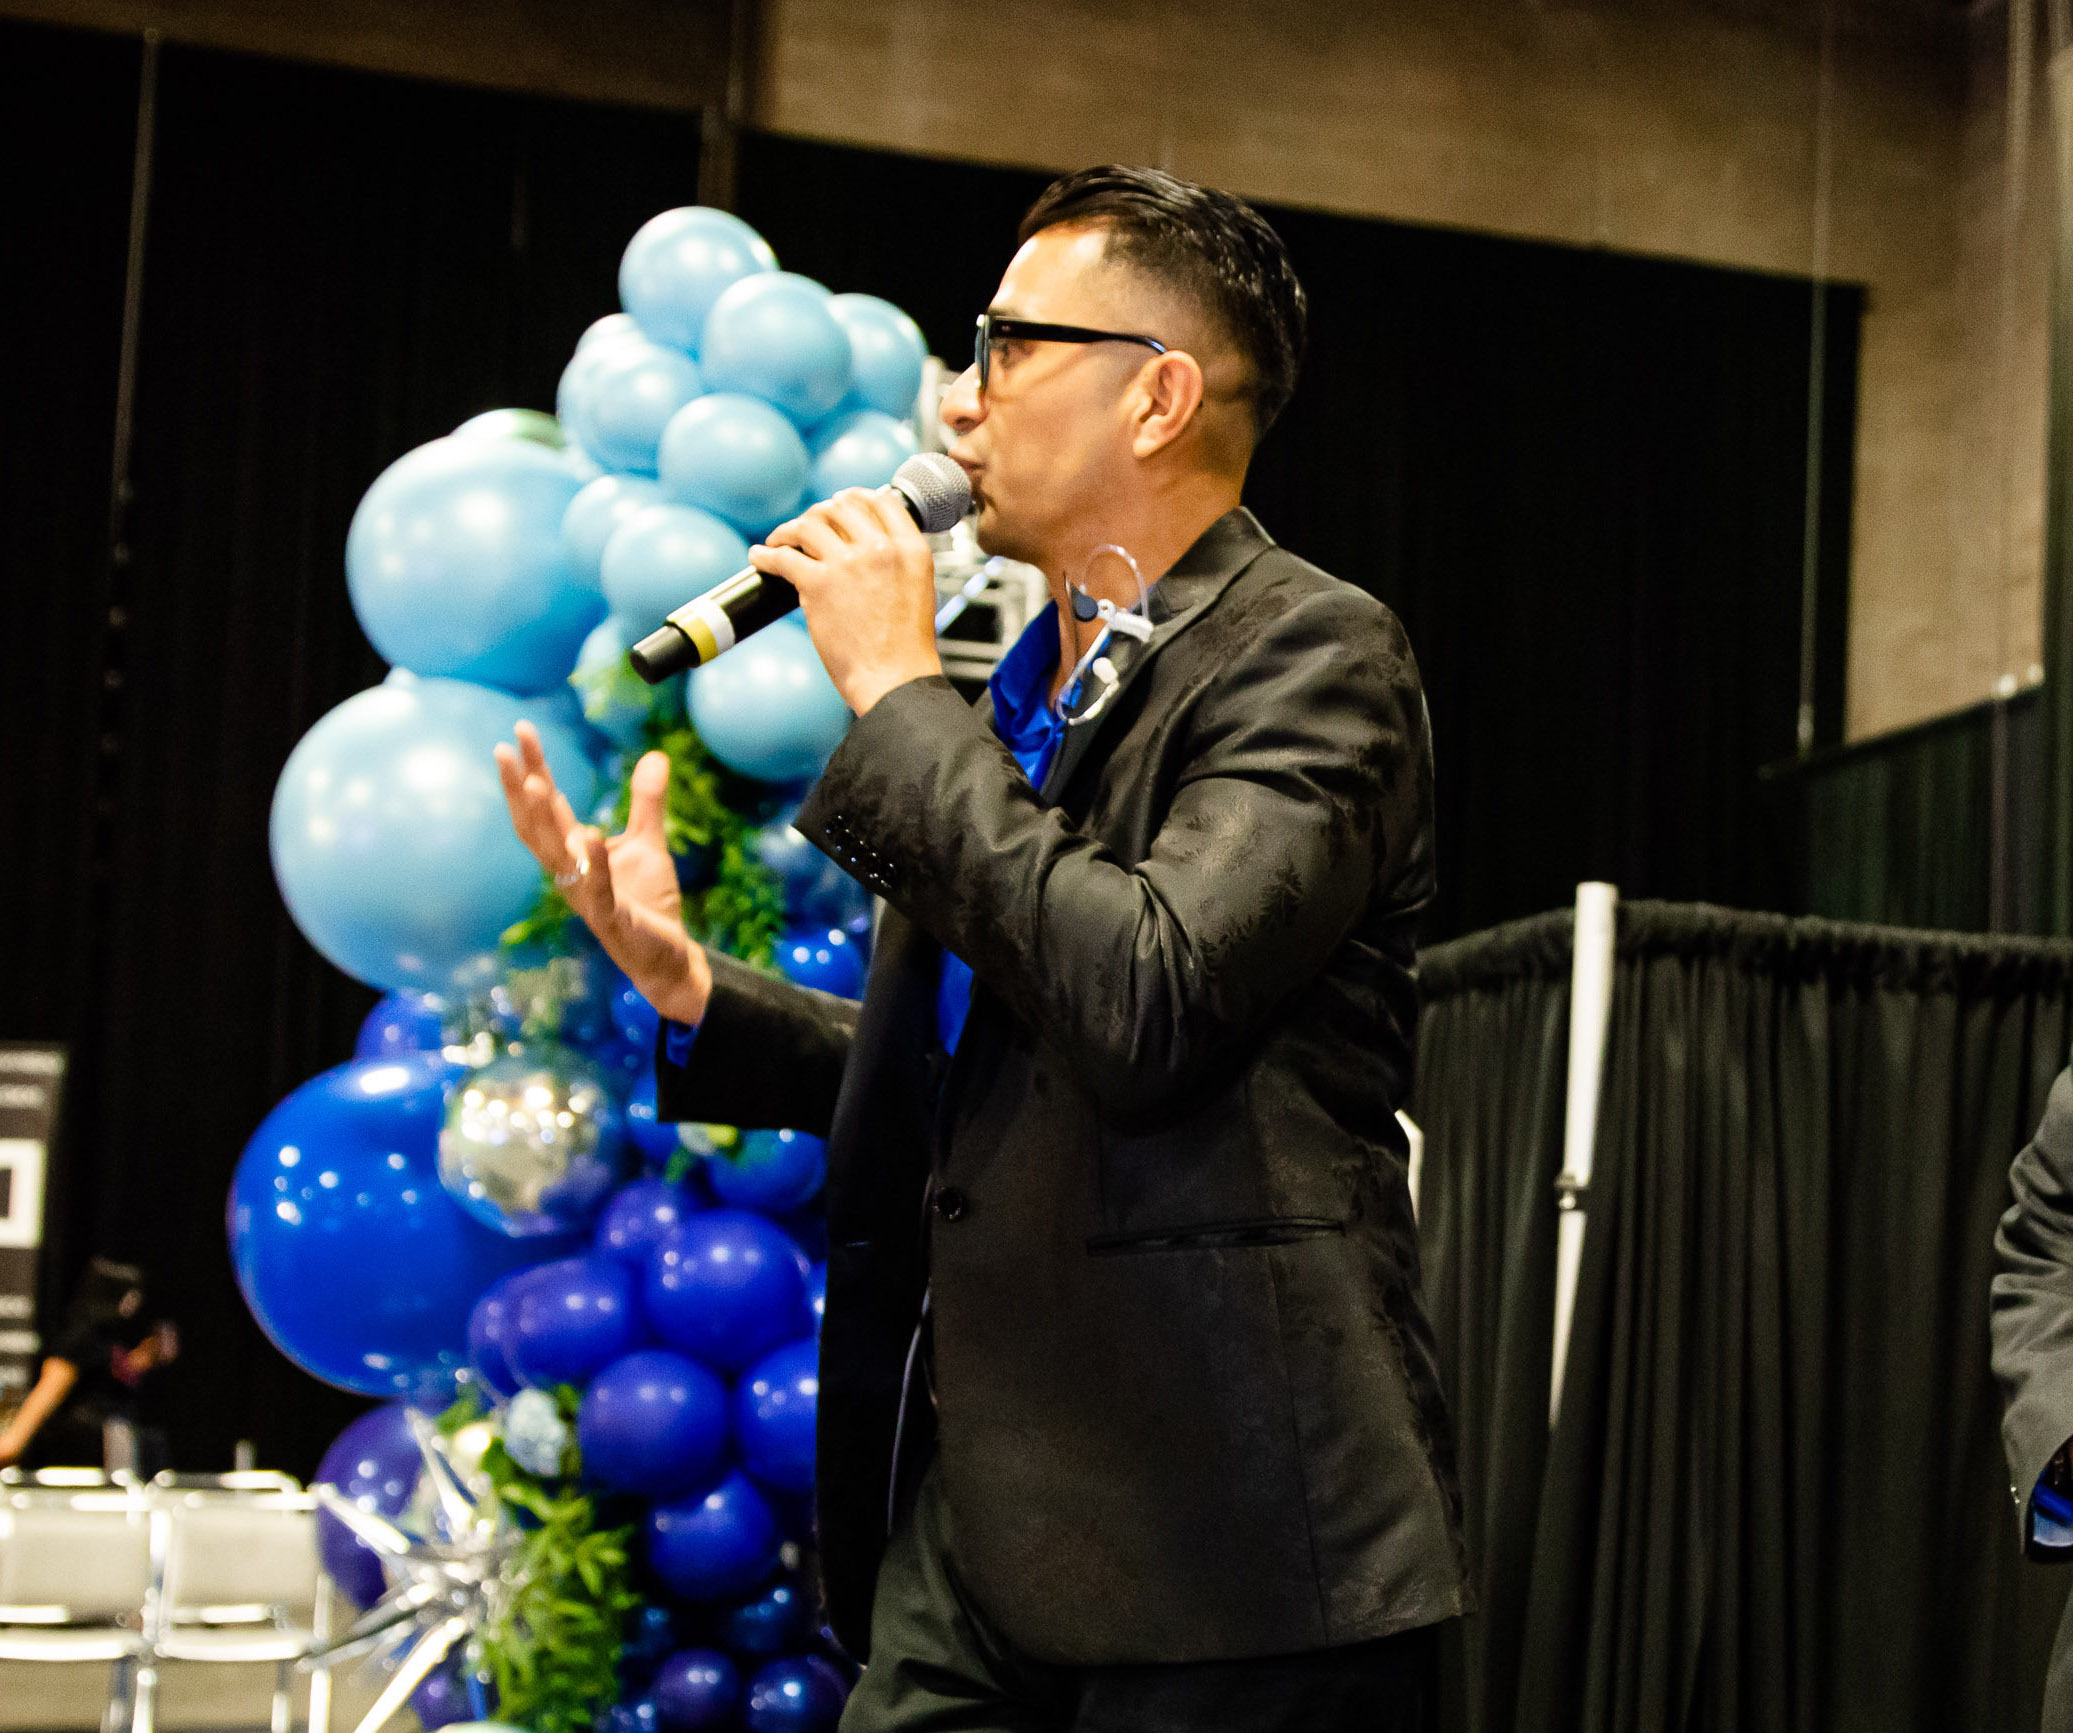 Wedding Entertainment Expert Sal Cortez At Blissfully Yours Wedding Expo